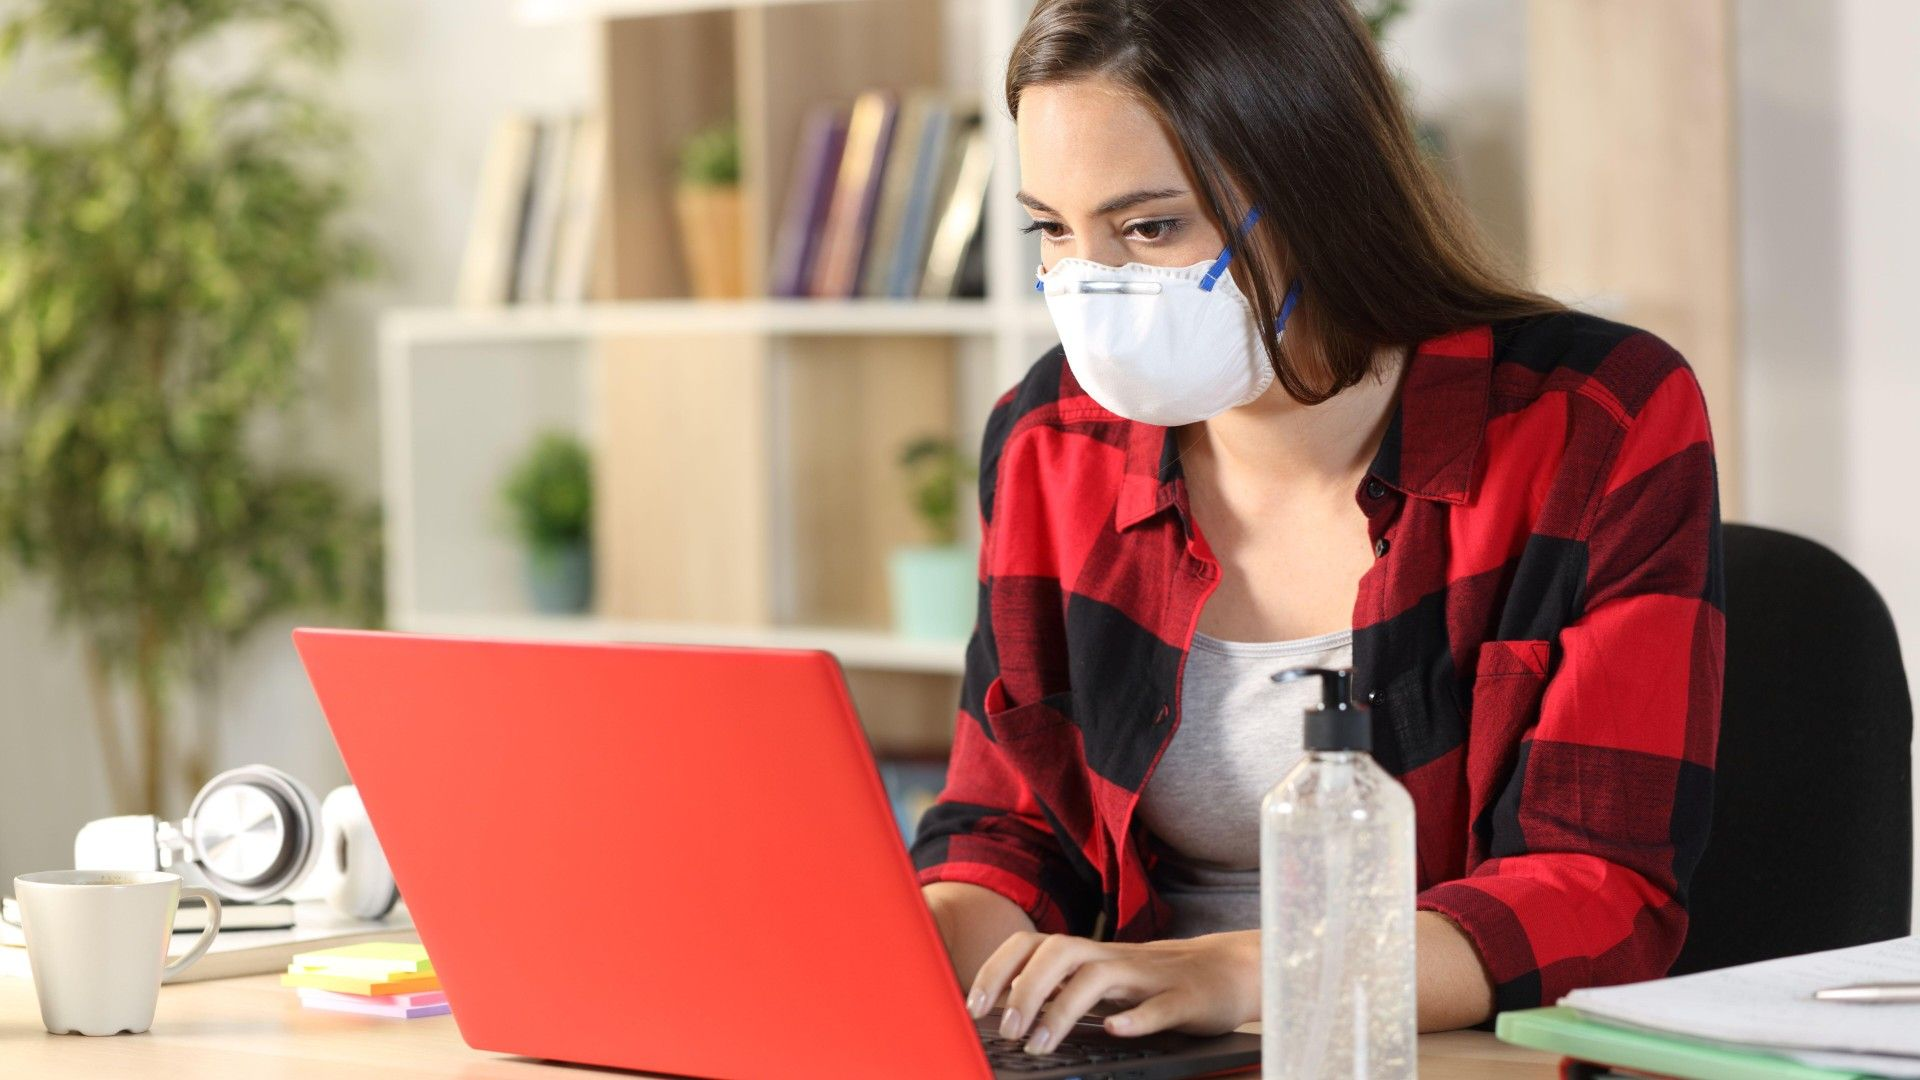 Stock image of a masked woman typing on a laptop